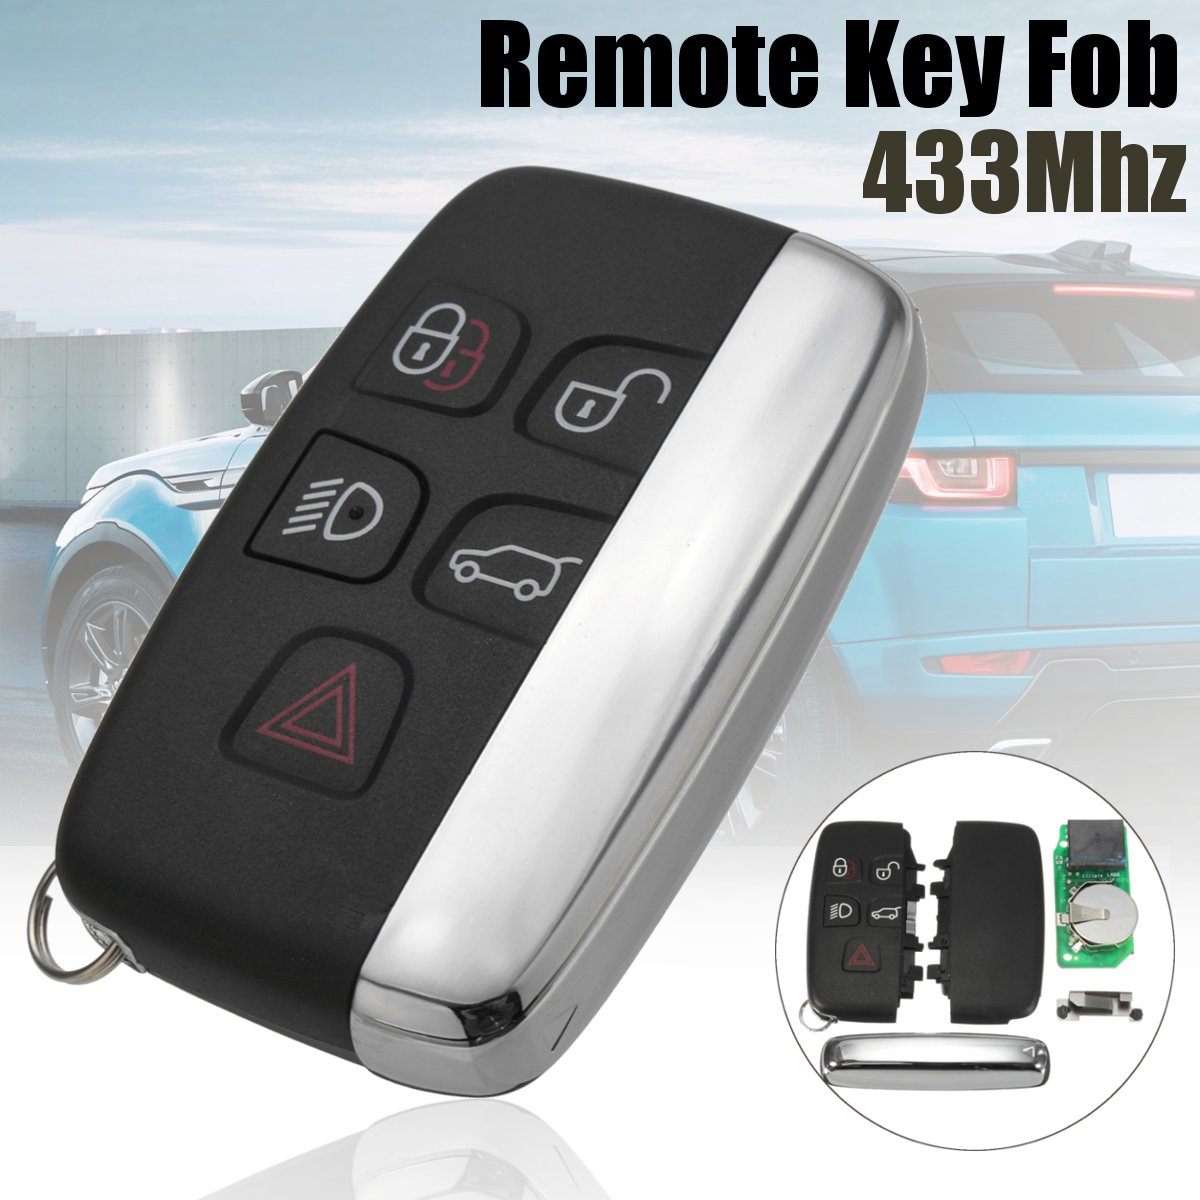 433Mhz Remote Key Fob w/ 7953 Chip for LAND ROVER RANGE ROVER SPORT EVOQUE 10-16